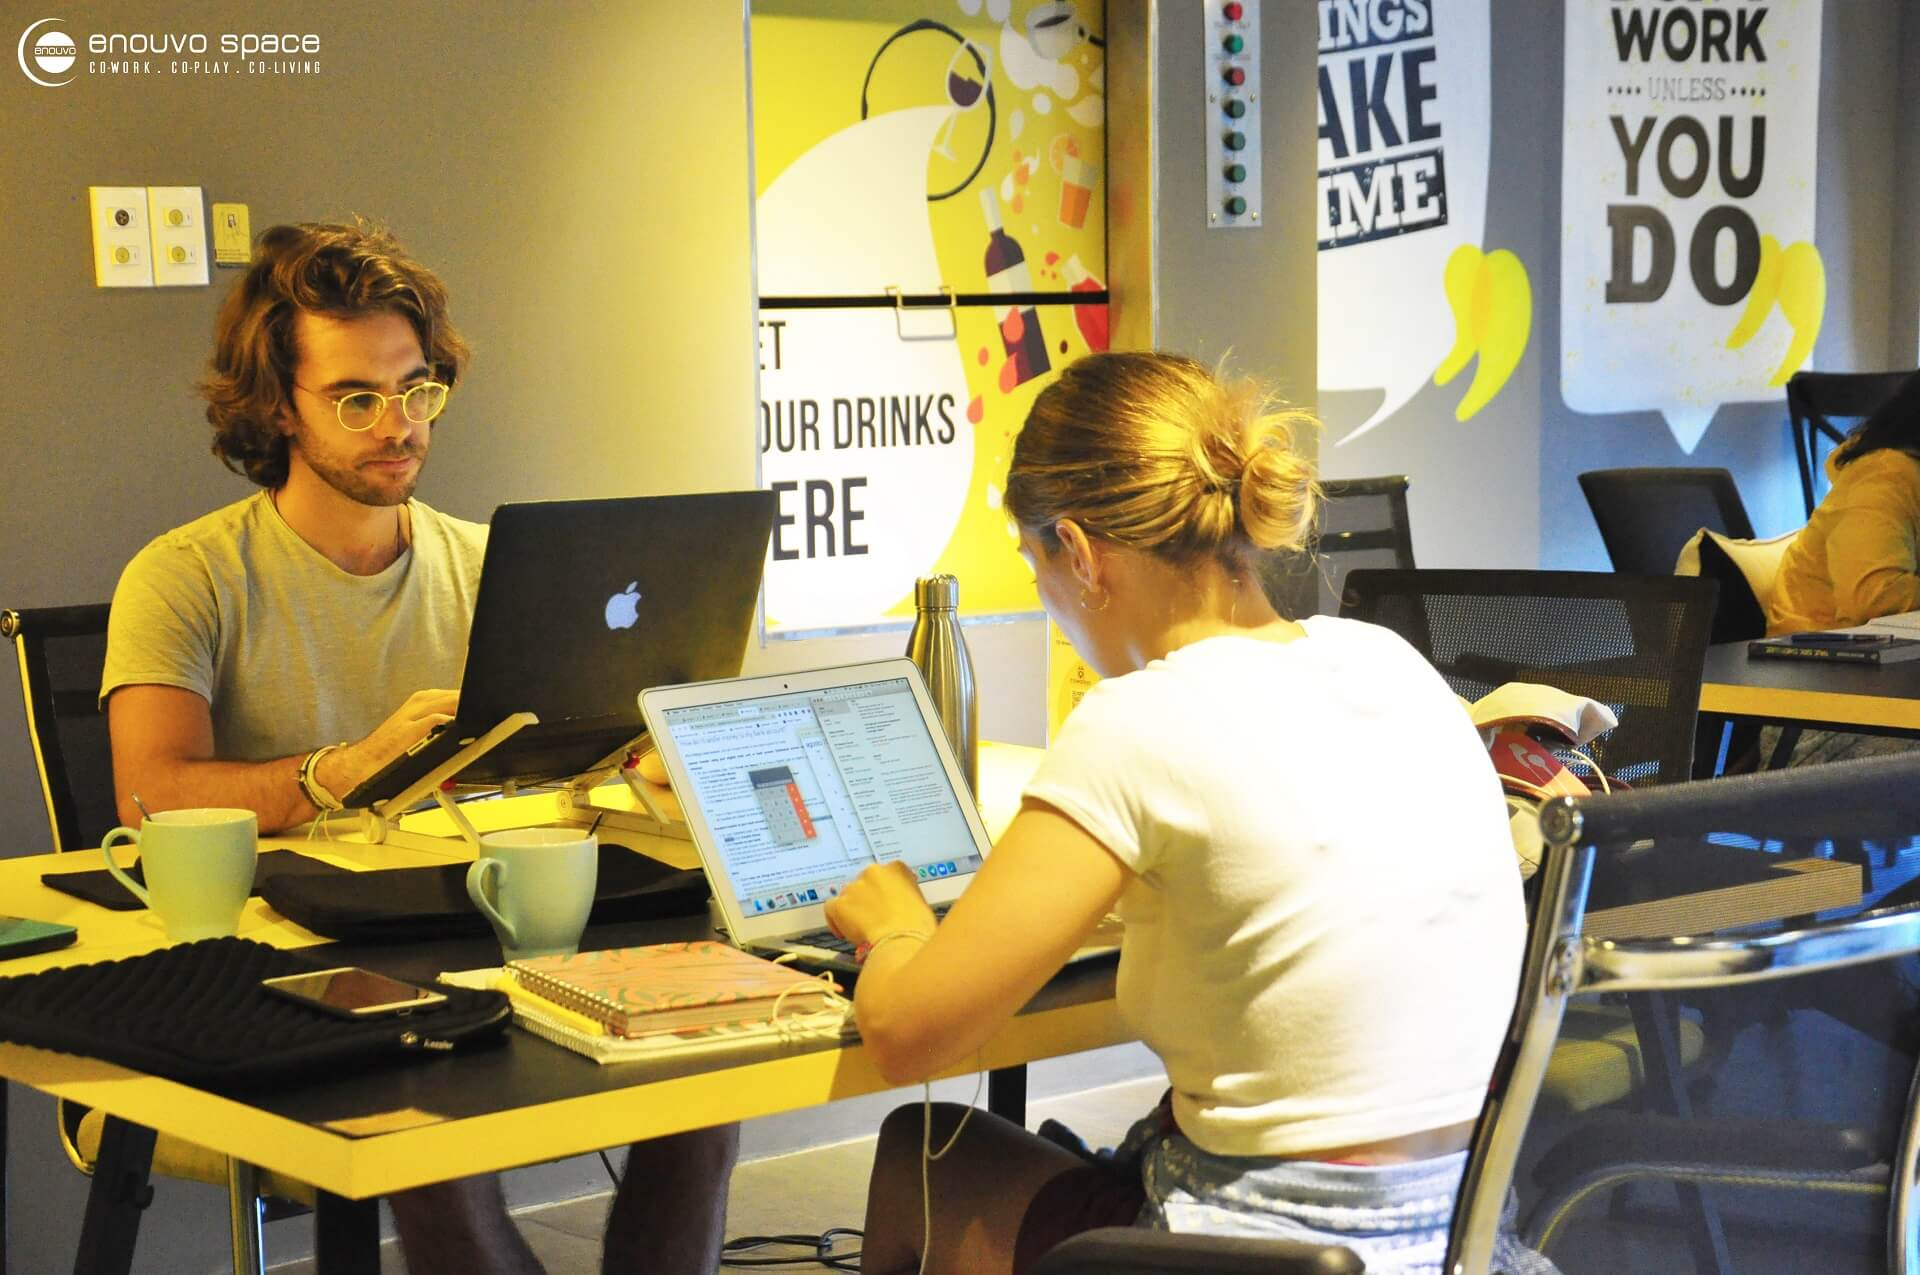 Benefits of Working in a Coworking Space